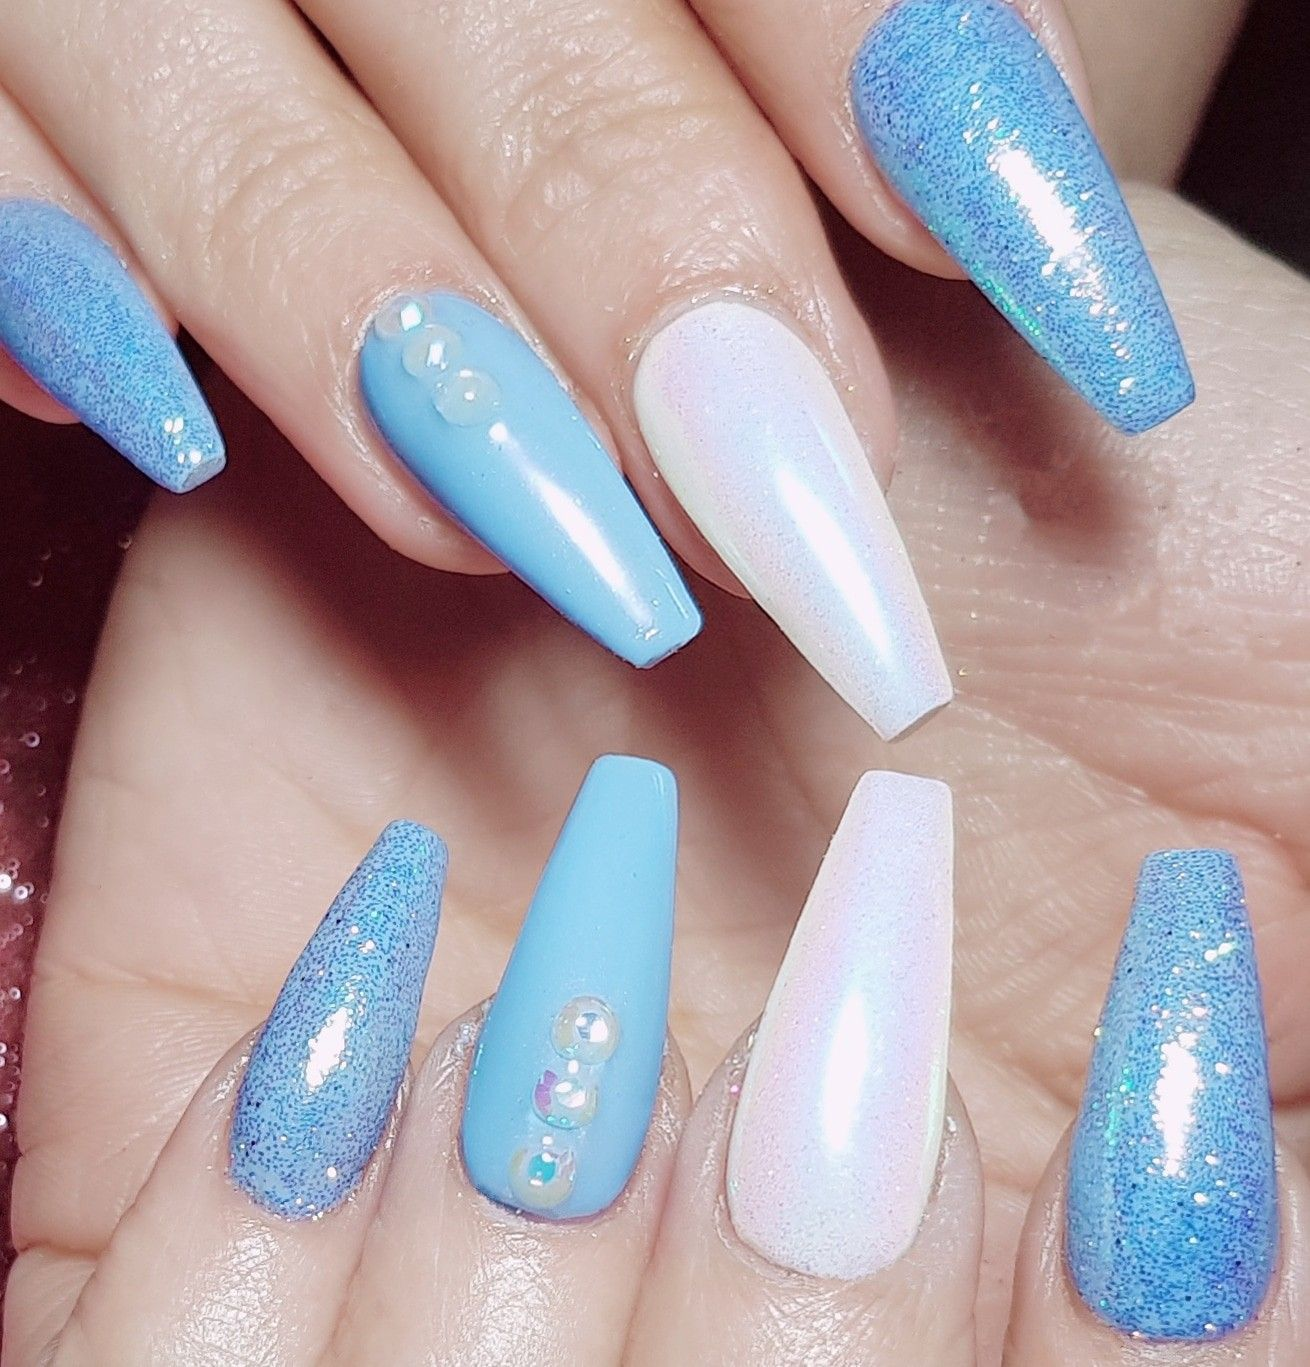 Sky Blue And White Acrylic Sculpted Nails With Glitter And Gems Blue Glitter Nails Blue Christmas Nails Sky Blue Nails